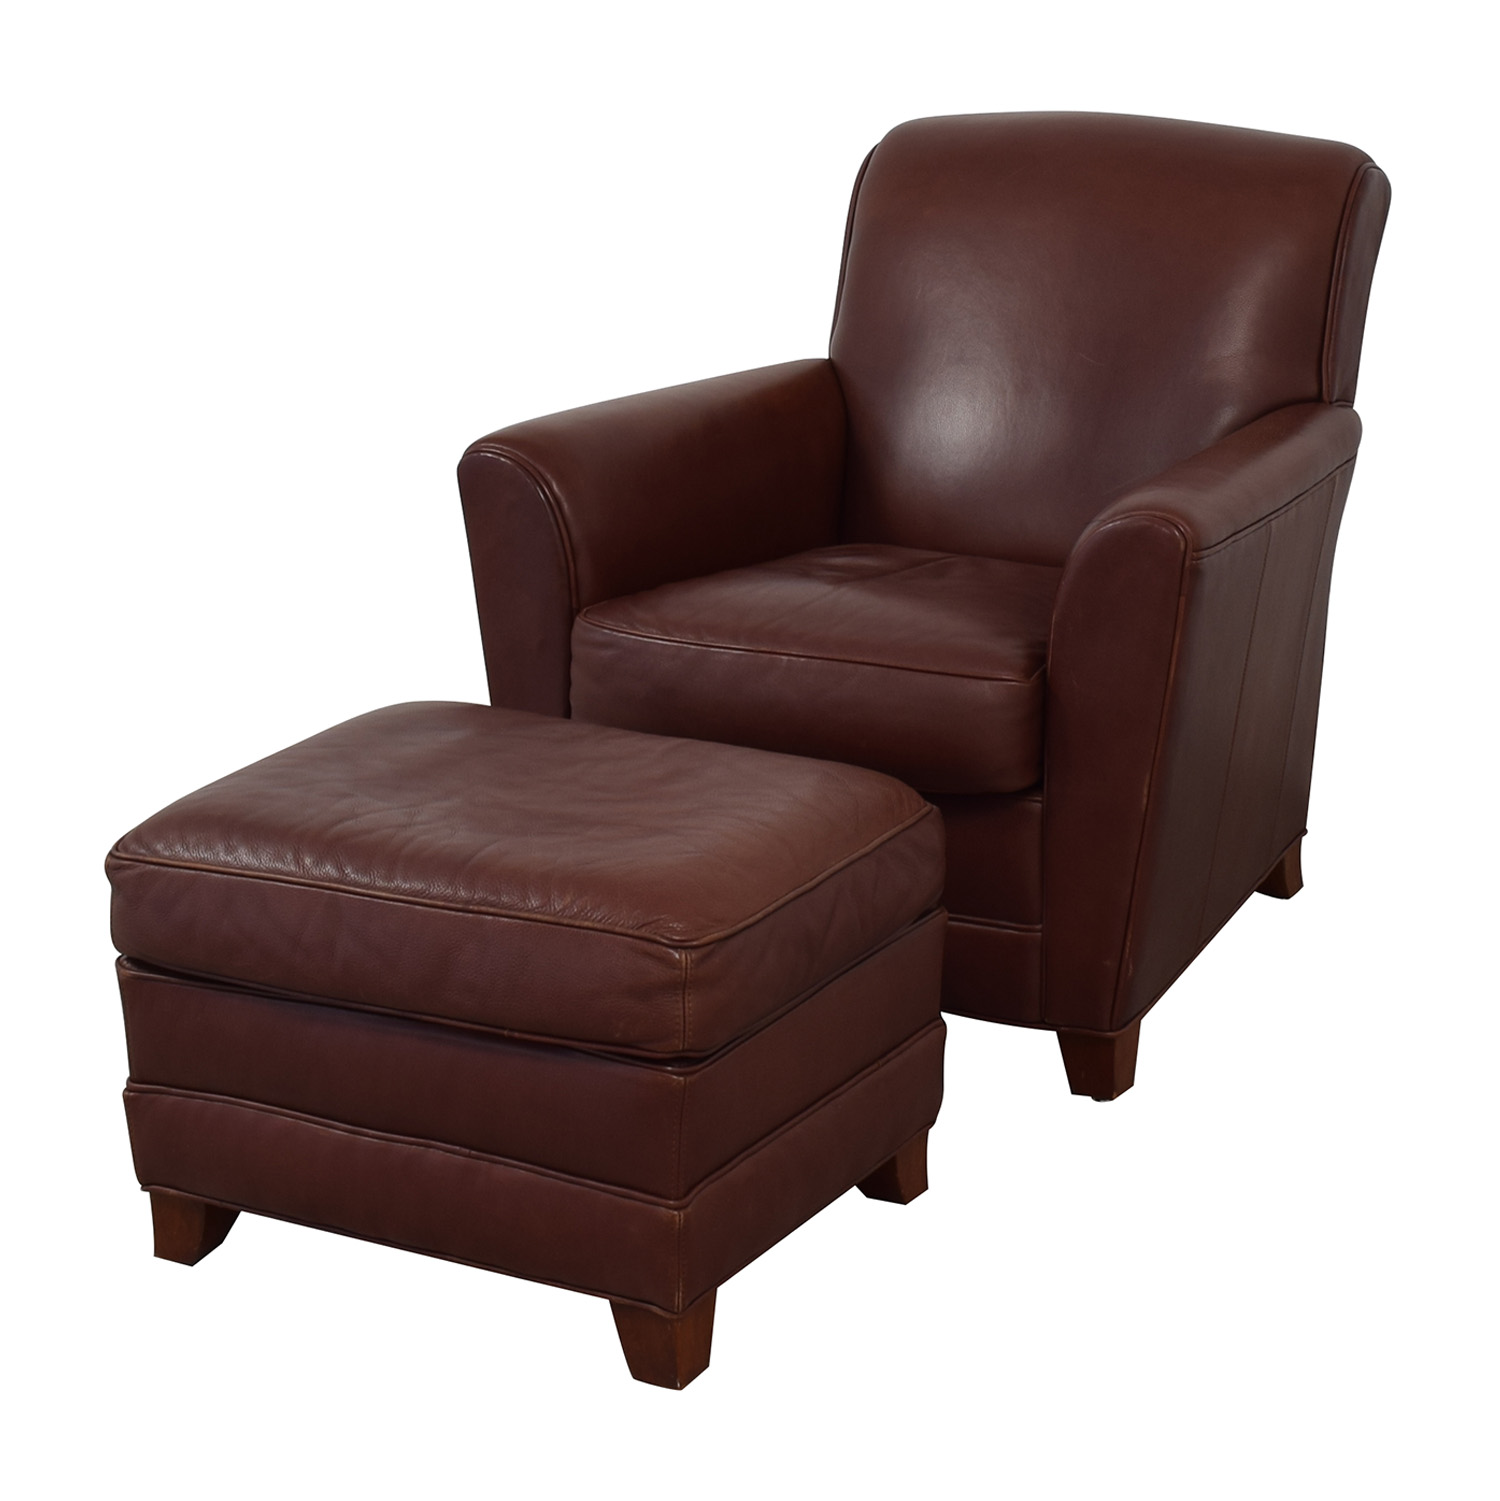 Miraculous 76 Off Stickley Furniture Stickley Furniture Leather Club Chair And Ottoman Chairs Alphanode Cool Chair Designs And Ideas Alphanodeonline